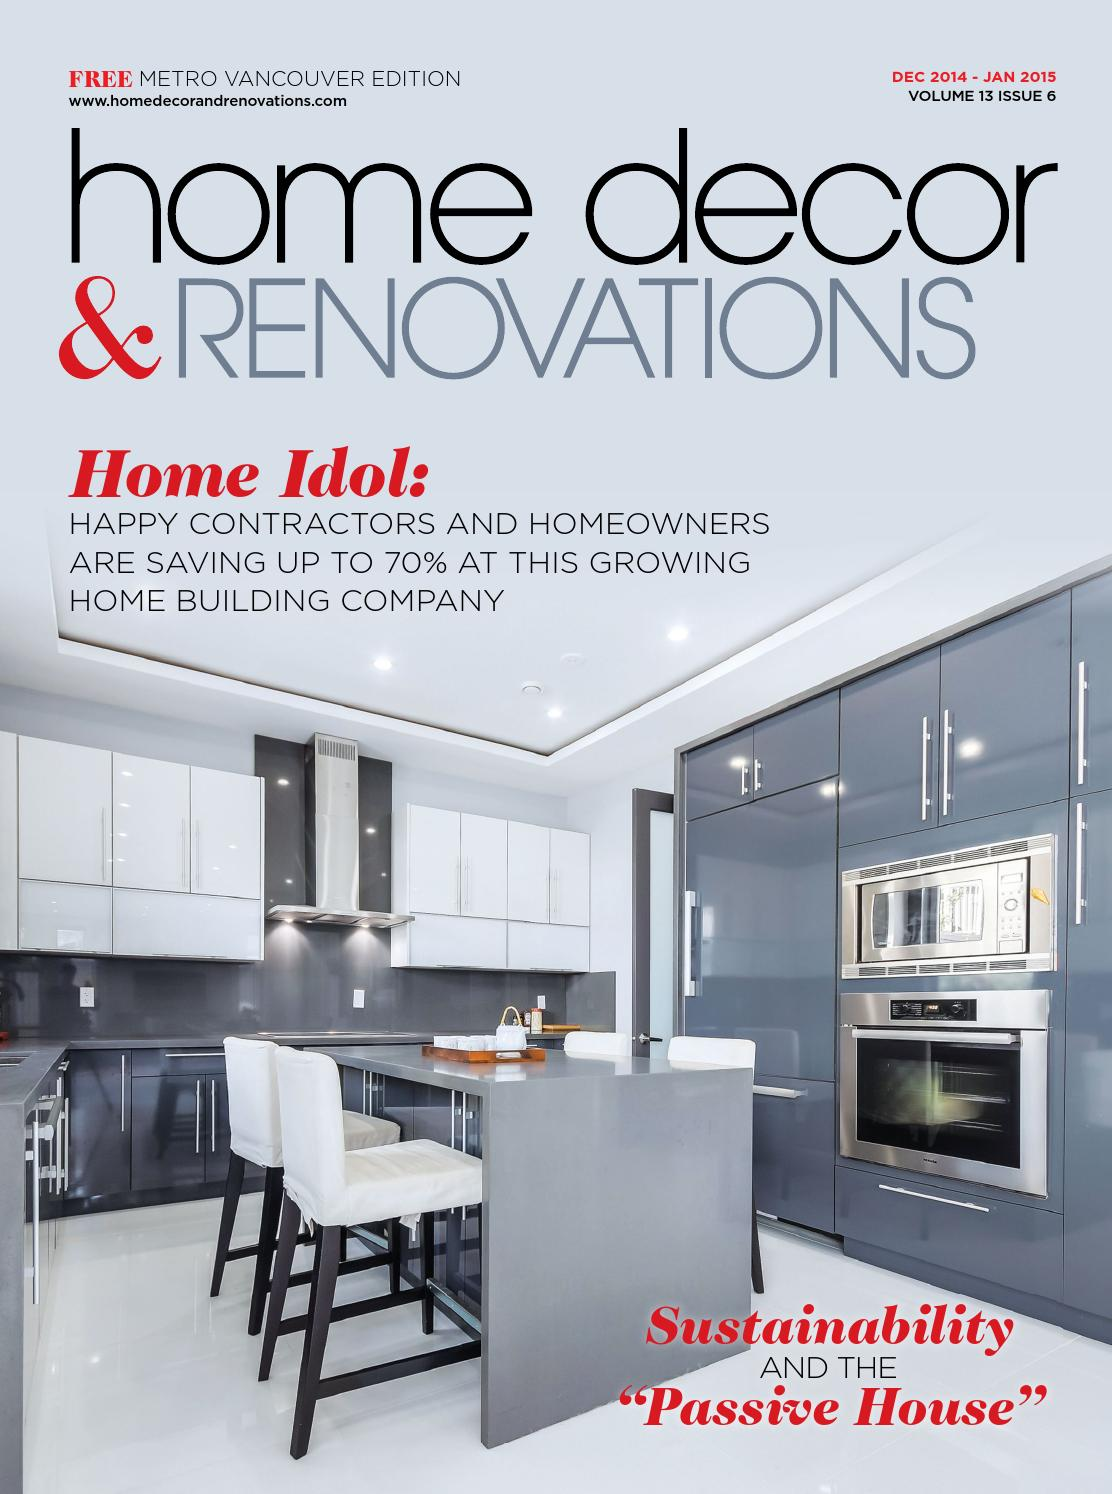 home decor stores in vancouver vancouver home decor amp renovations dec 2014 jan 2015 12562